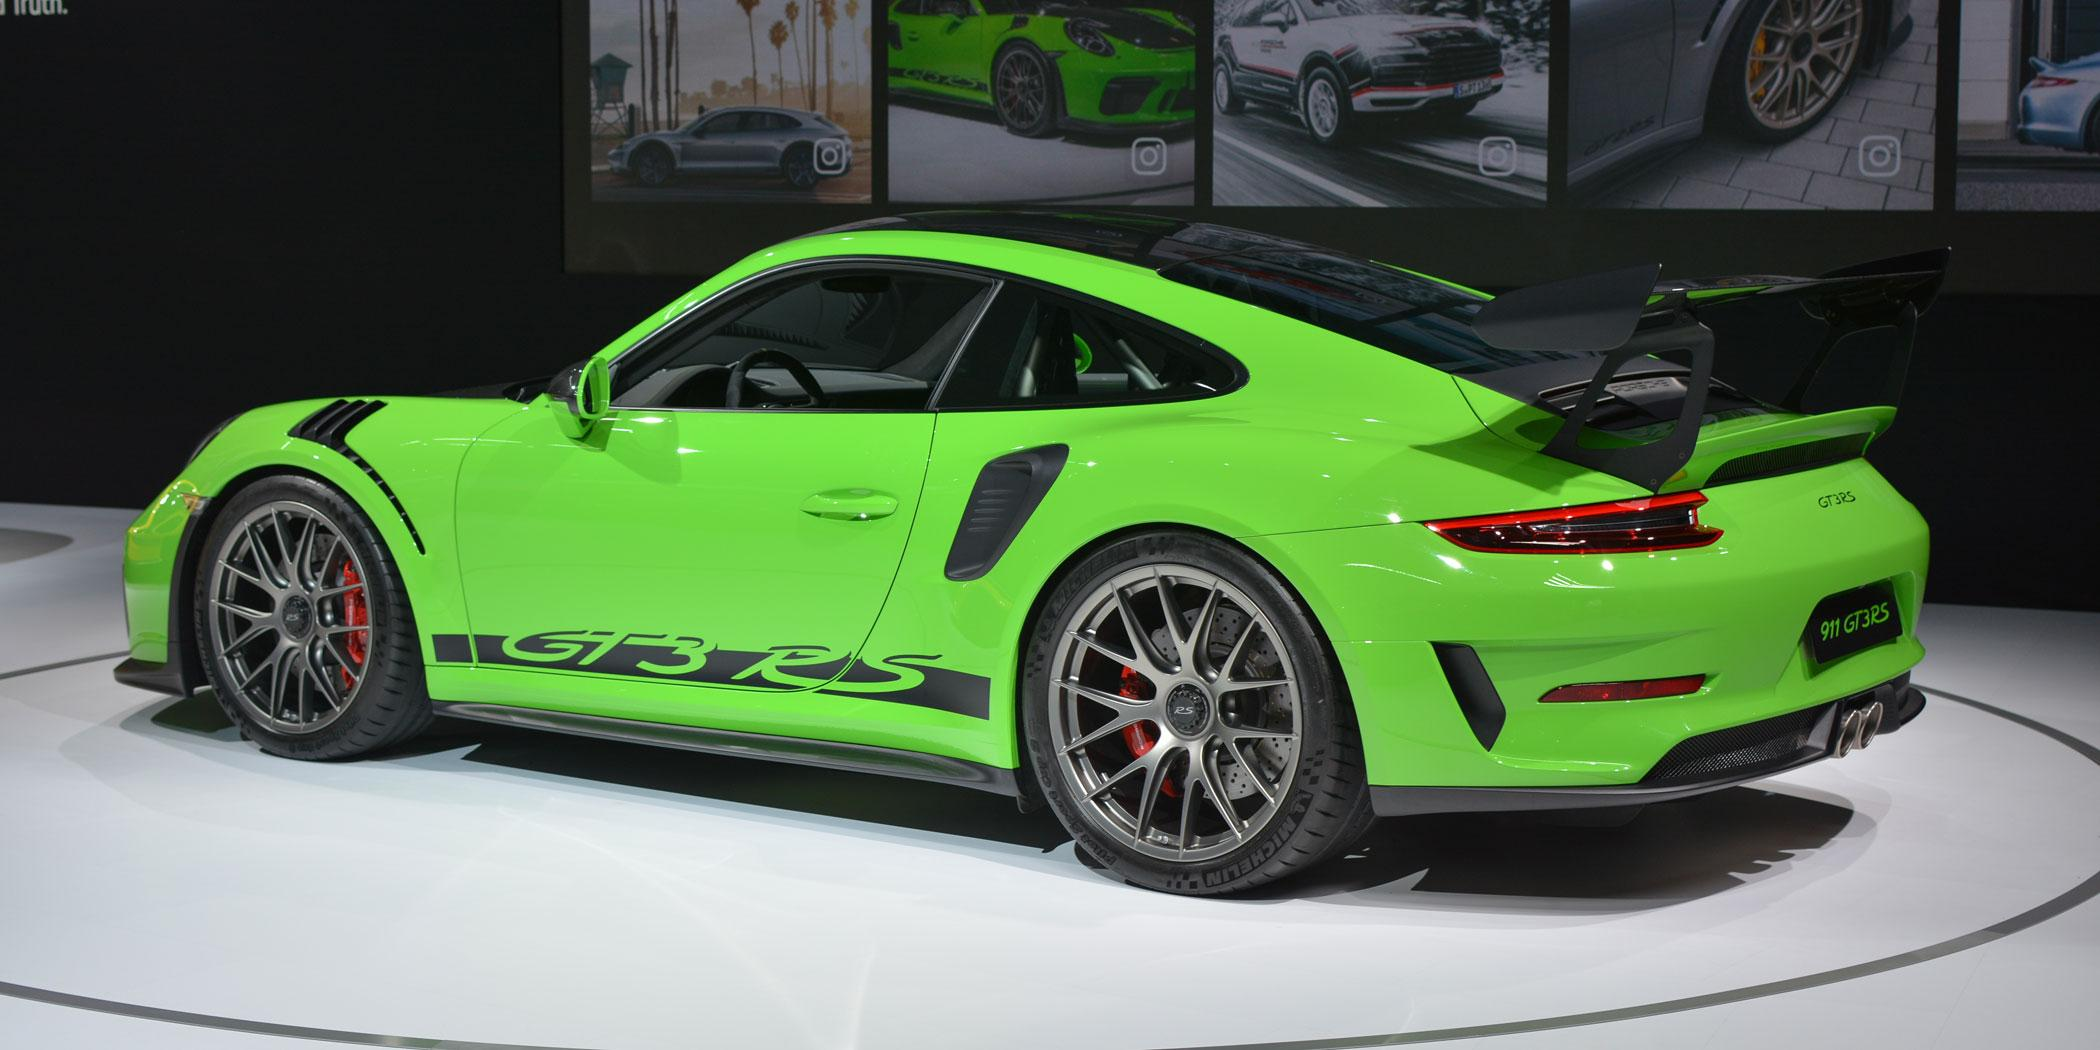 2019 Porsche 911 GT3 RS Photo: Ian Whelan